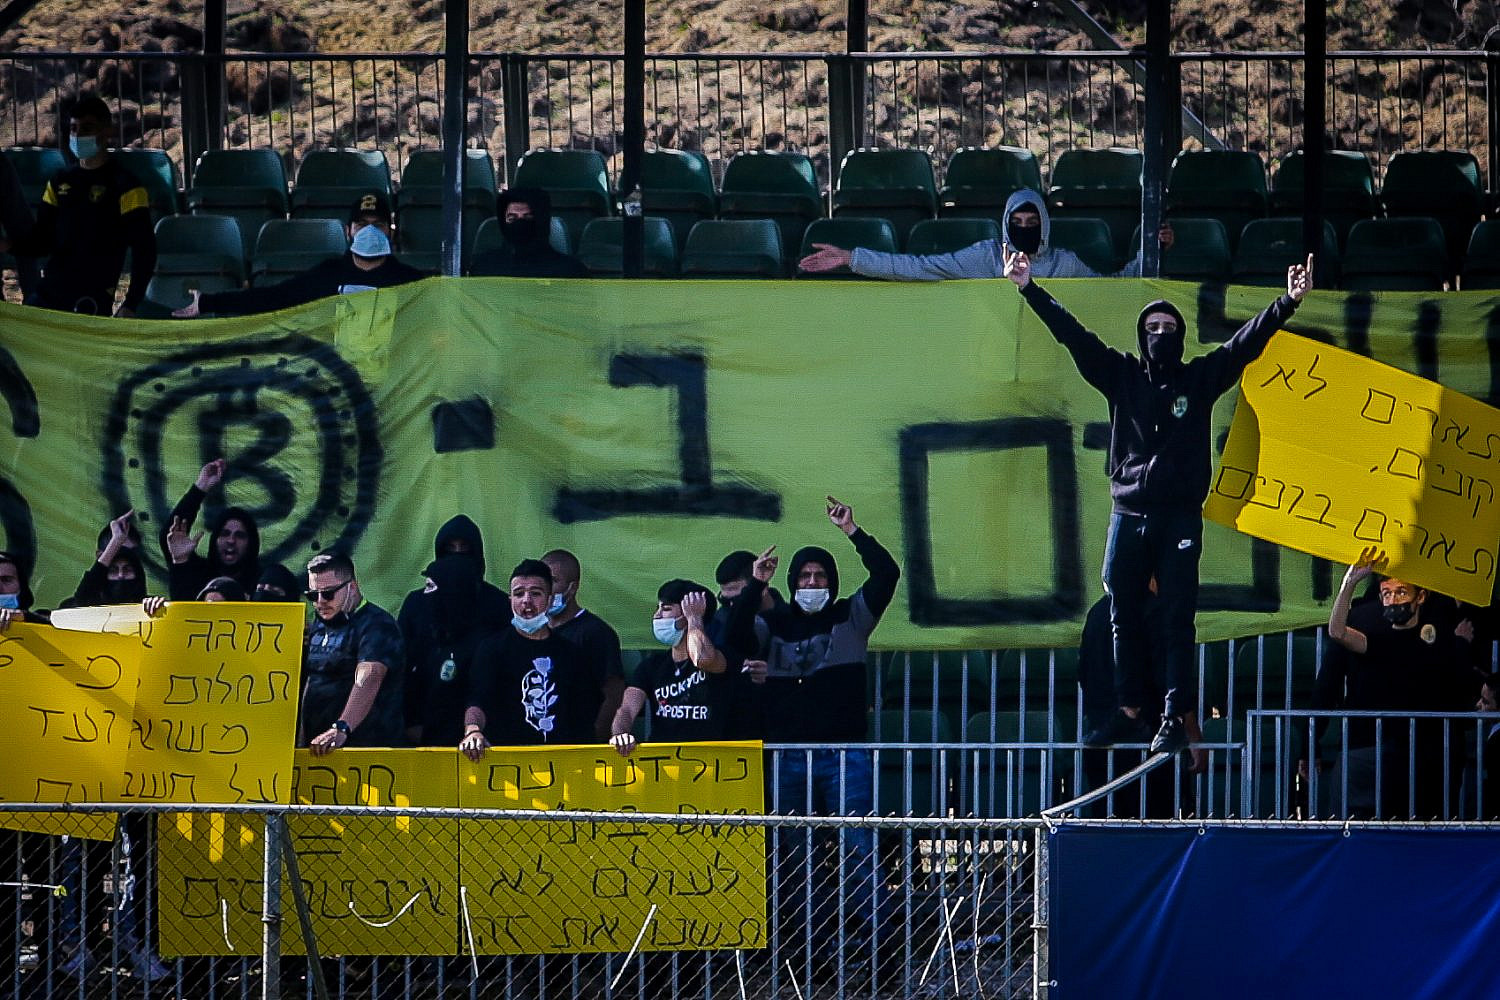 Members of La Familia group protest against the intention of Beitar owner Moshe Hogeg to sell a percentage of the group to a member of the UAE royalty, at Beitar Jerusalem training ground in Jerusalem, Dec. 4, 2020. (Flash90)